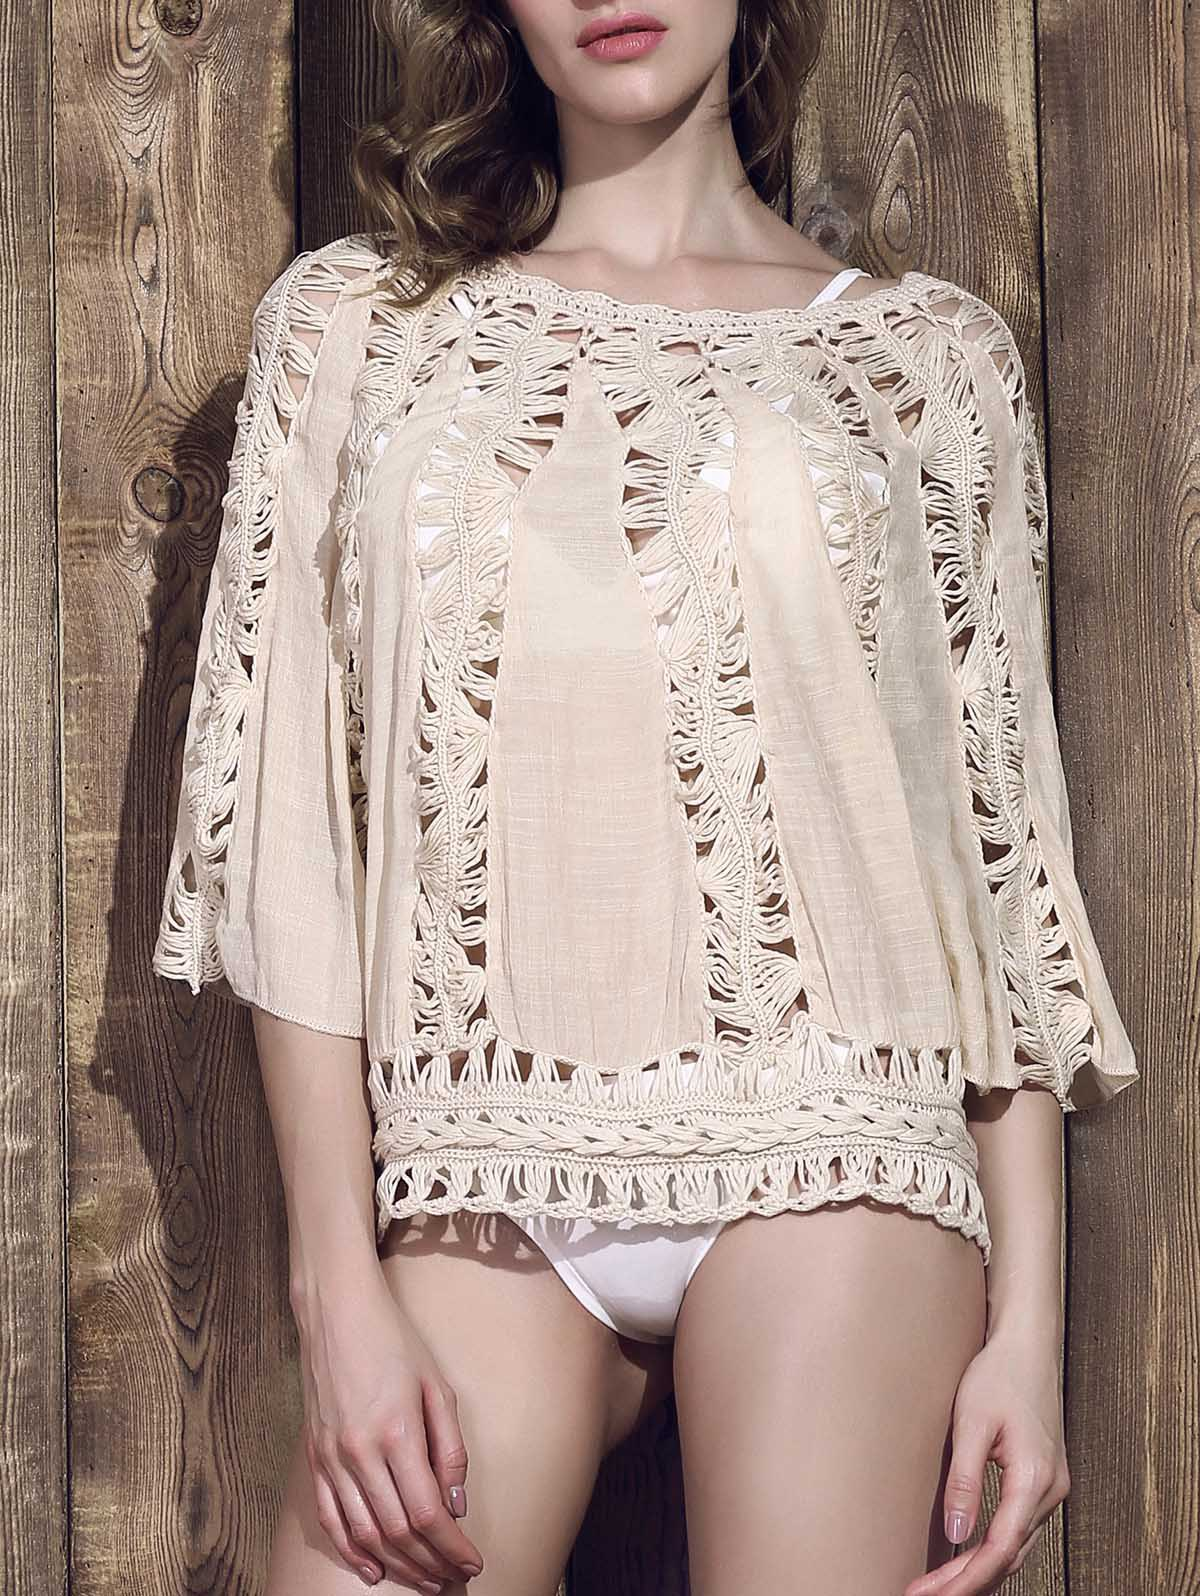 Chic Women's Scoop Neck Hollow Out Knitted 3/4 Sleeve Blouse - APRICOT ONE SIZE(FIT SIZE XS TO M)